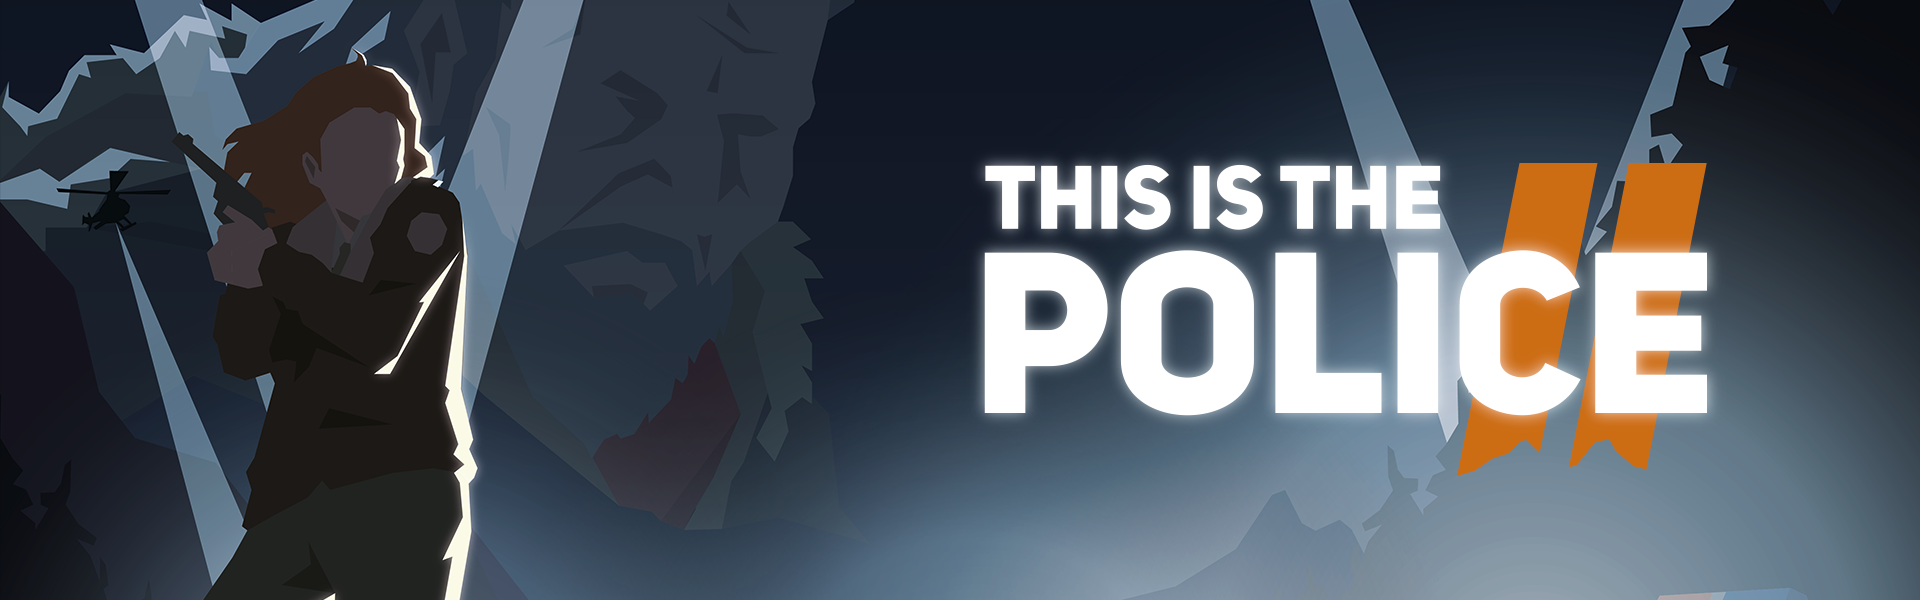 This is the Police 2 in arrivo ad Agosto per PC